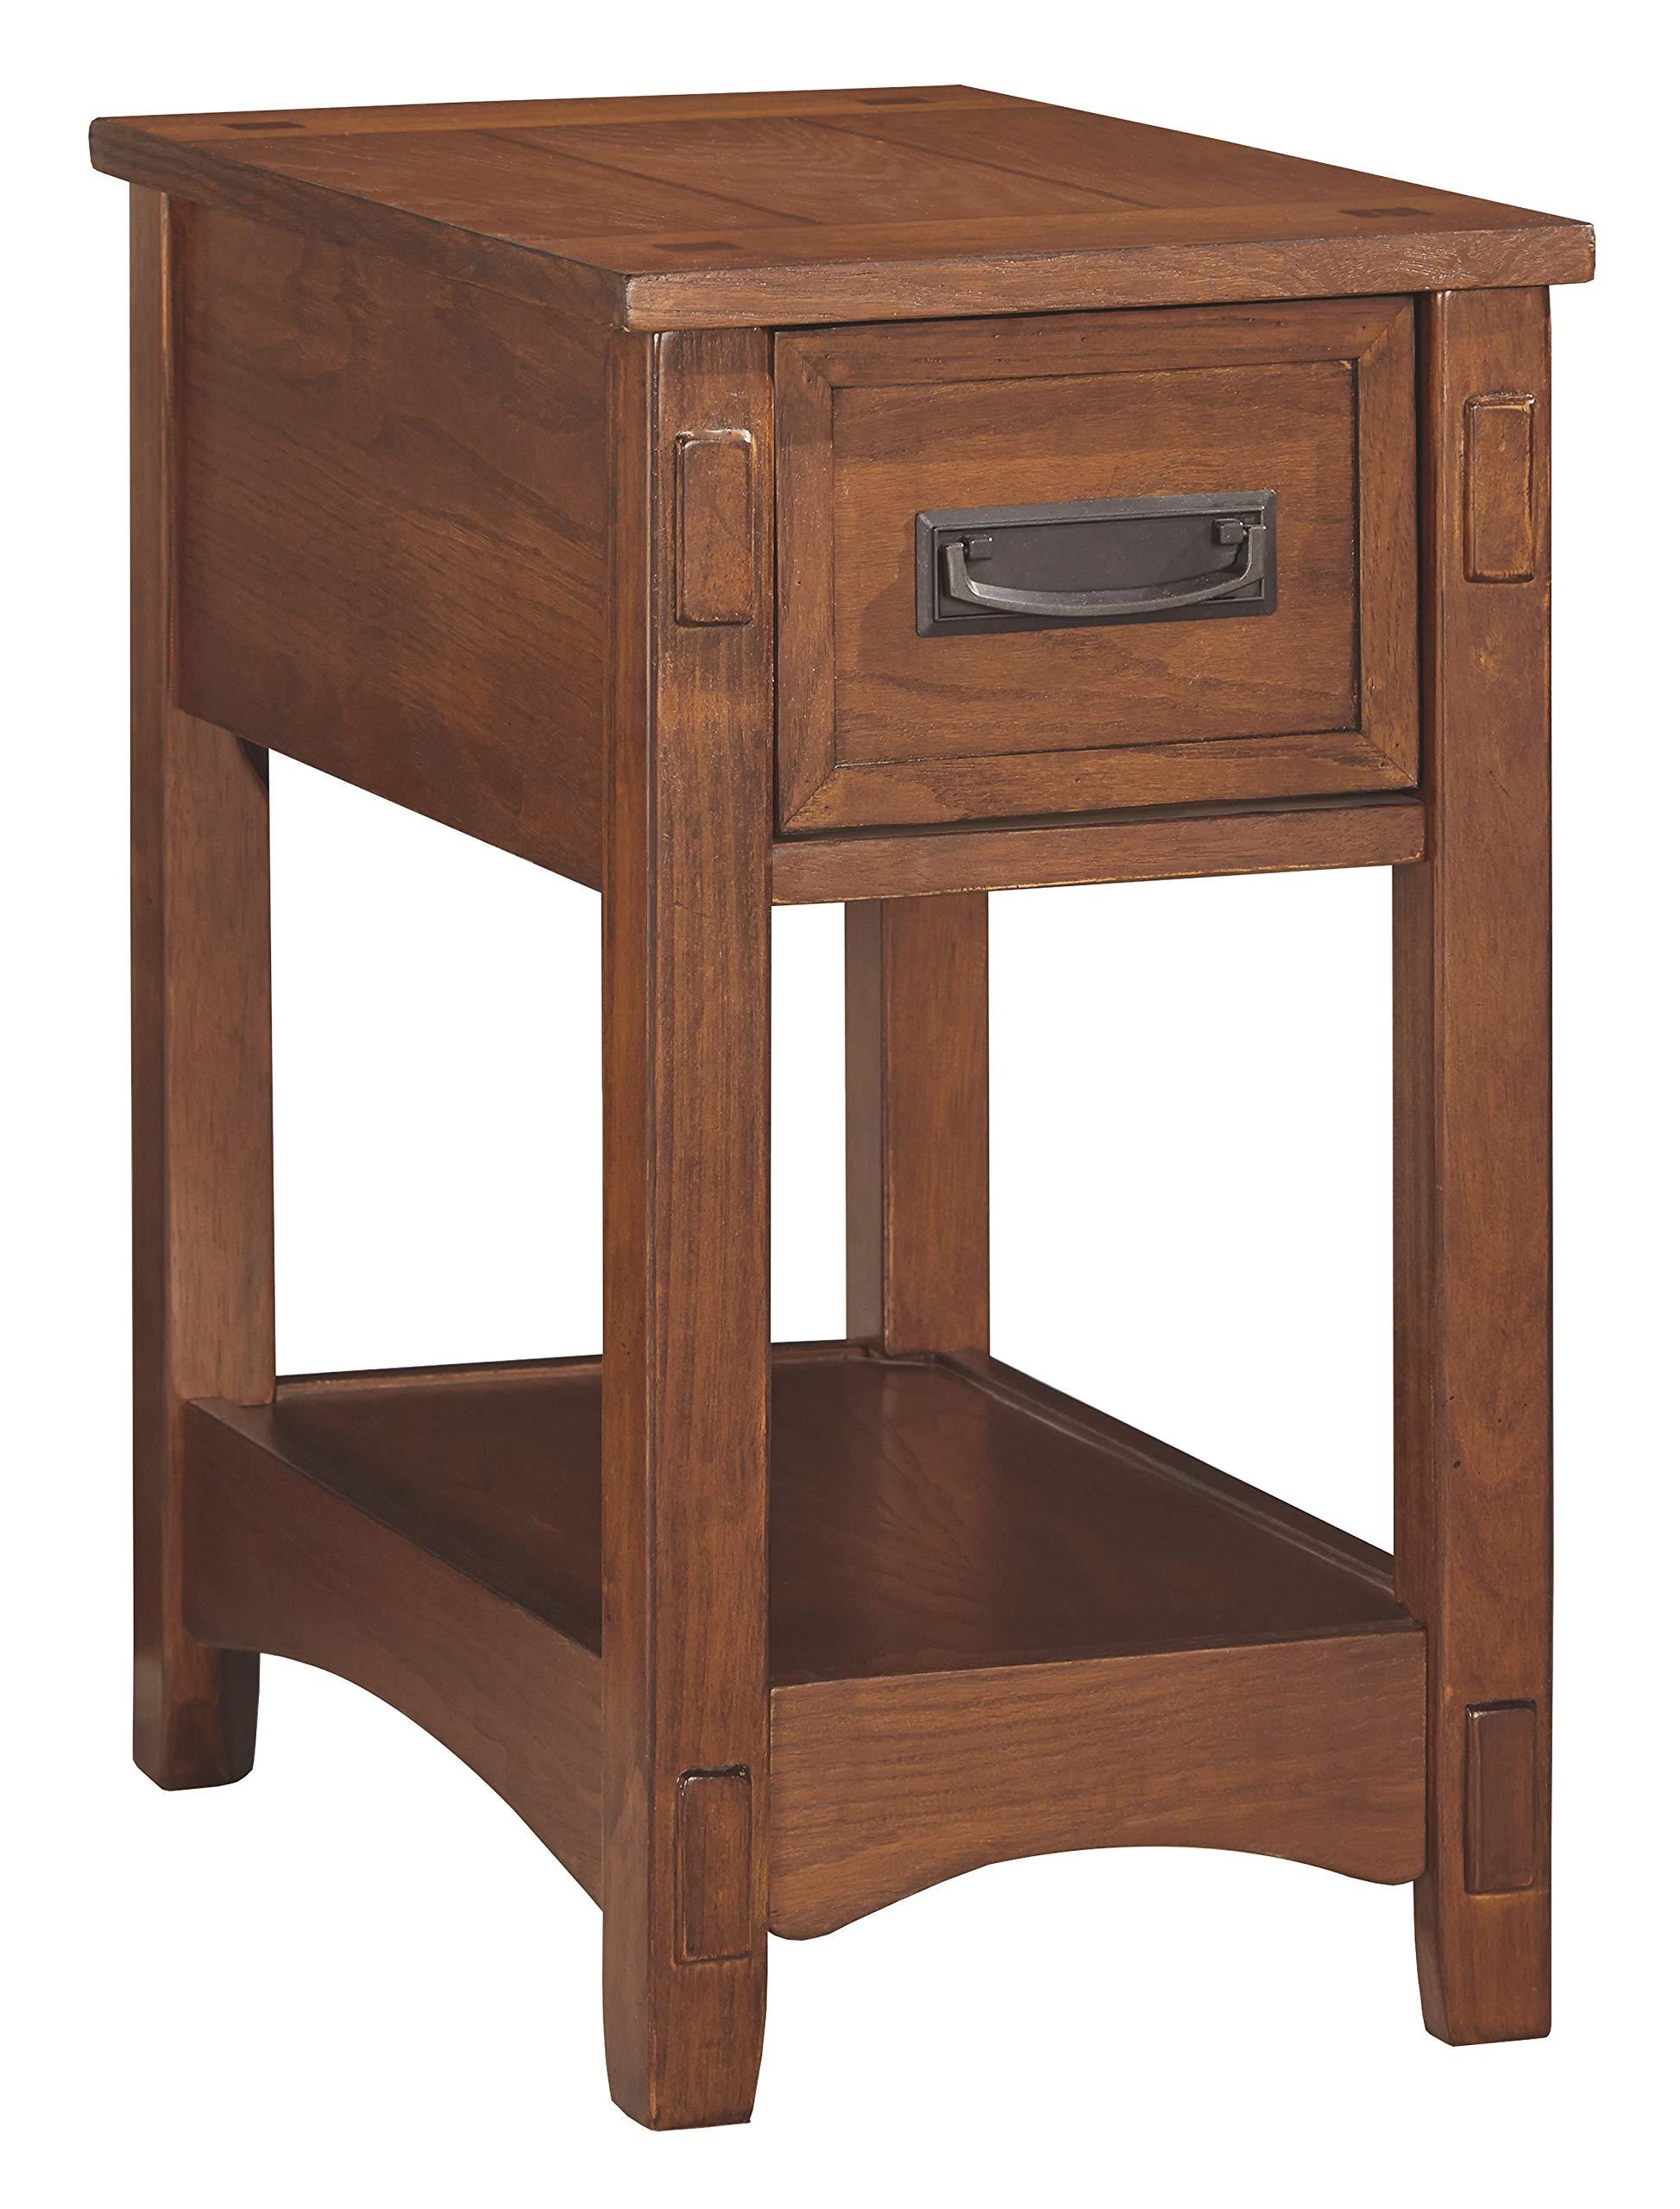 Ashley Furniture Signature Design - Breegin Chairside End Table - 1 Drawer - Contemporary - Brown by Signature Design by Ashley